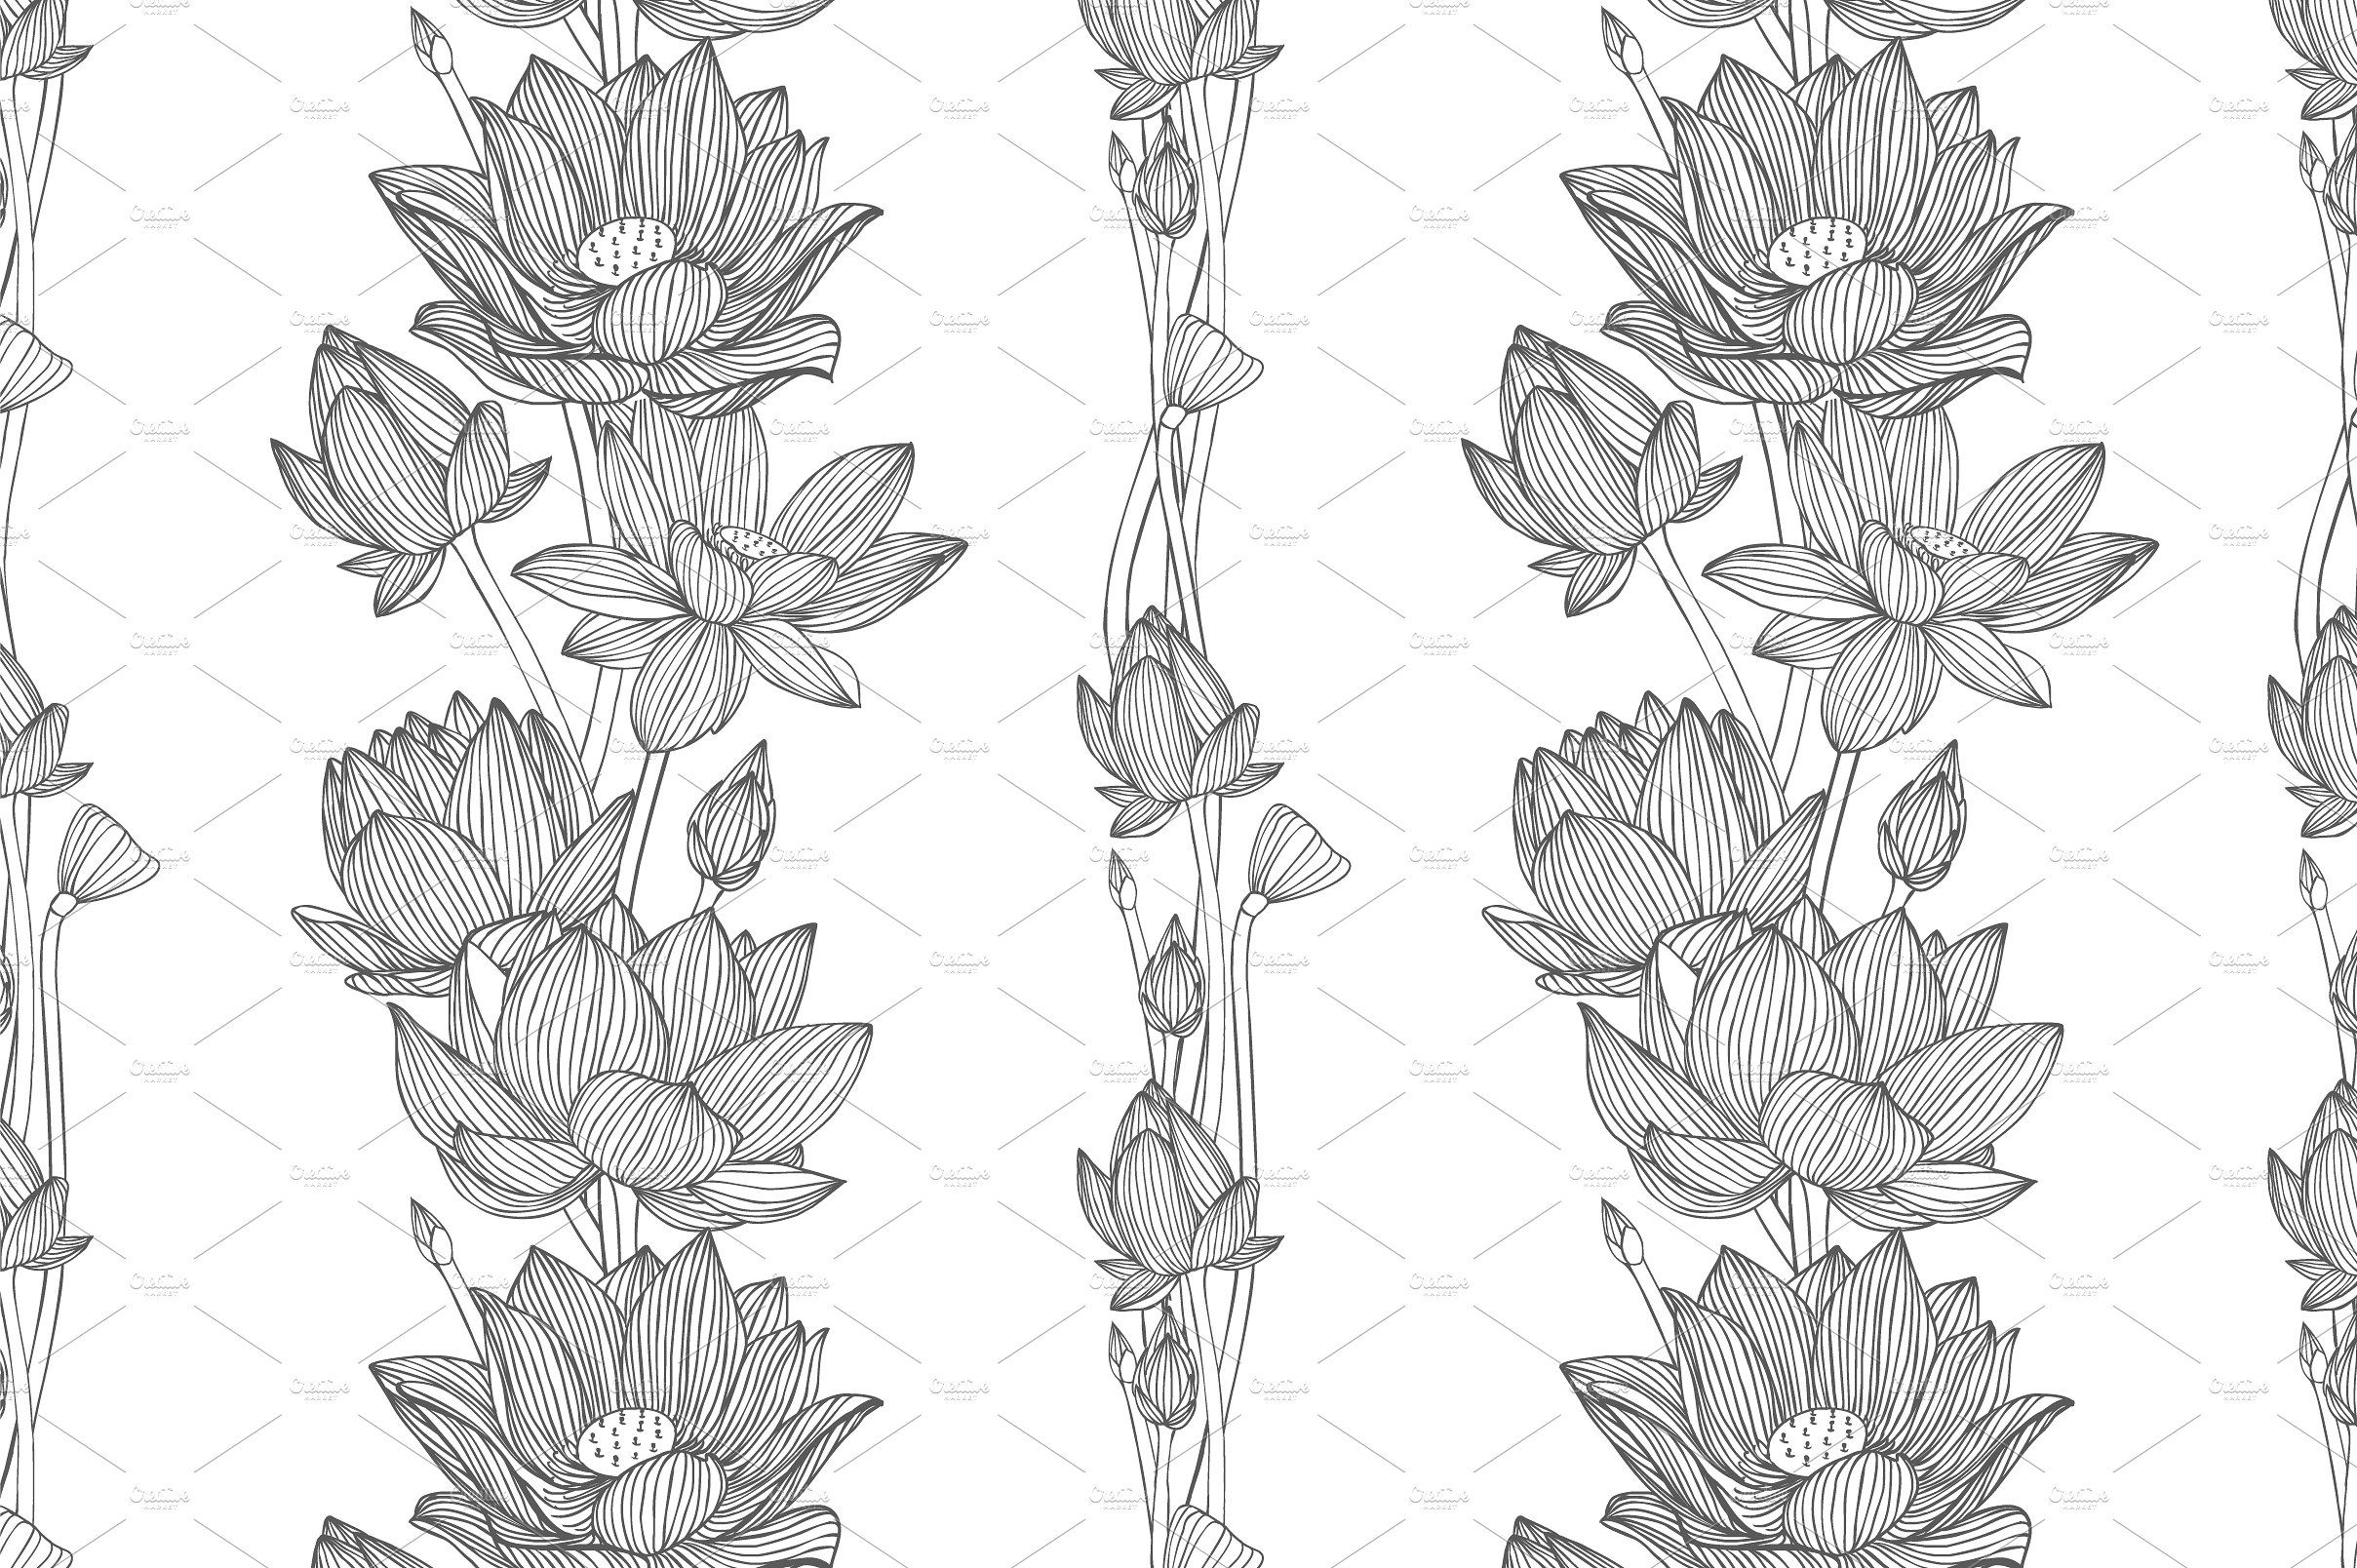 Pin by Светлана on Монохром Flower sketch images, Flower